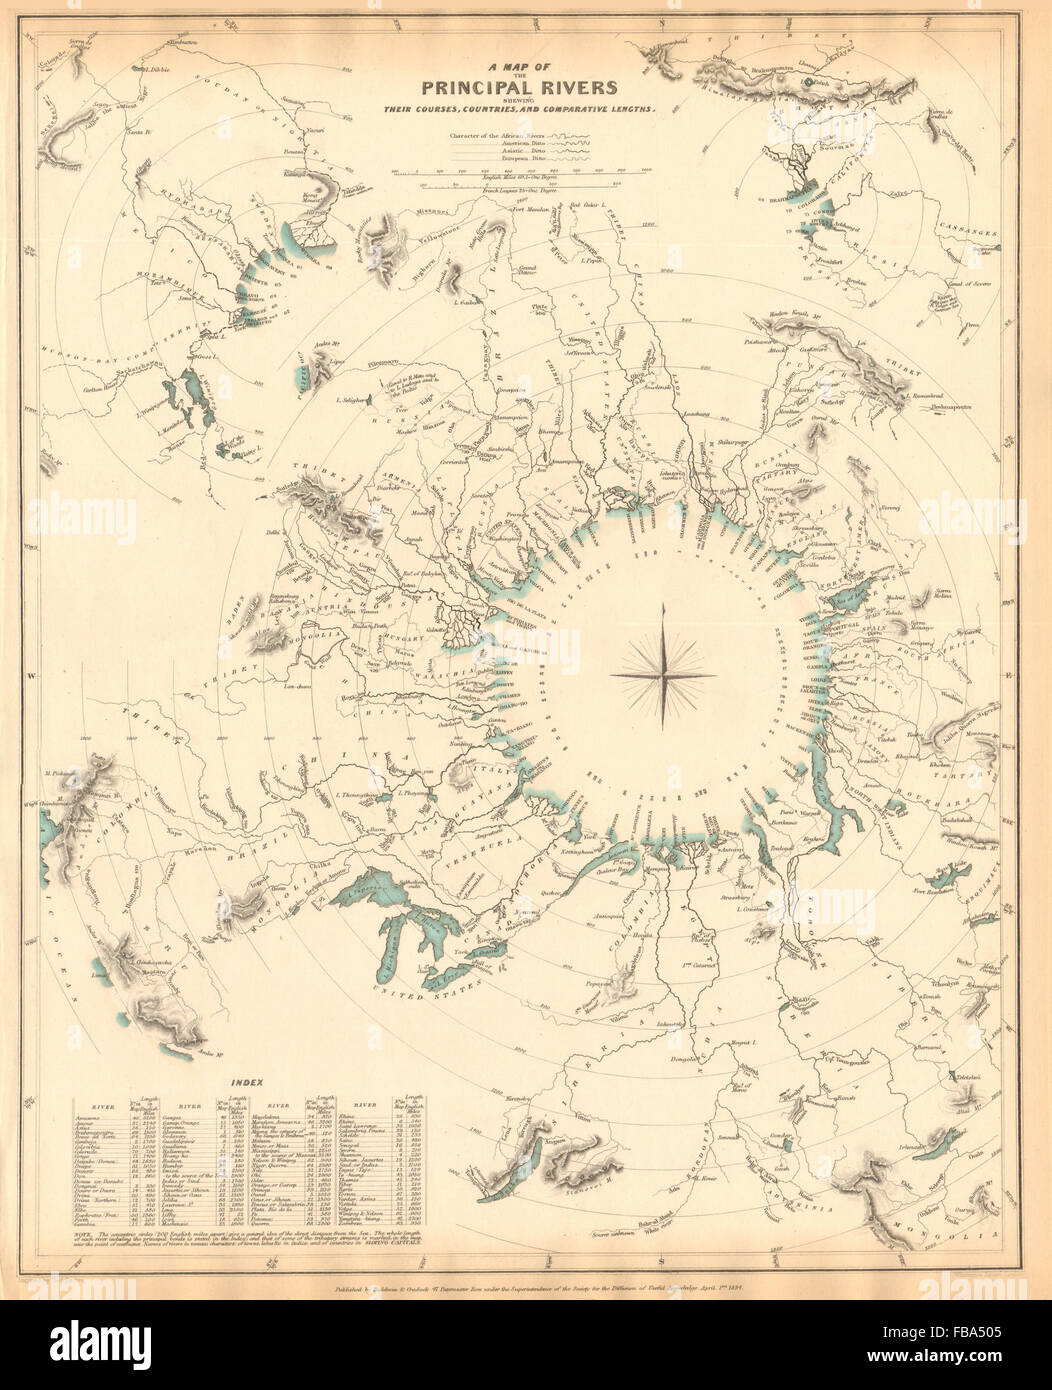 WORLD RIVERS. Comparative lengths of principal rivers. Countries.SDUK, 1844 map - Stock Image